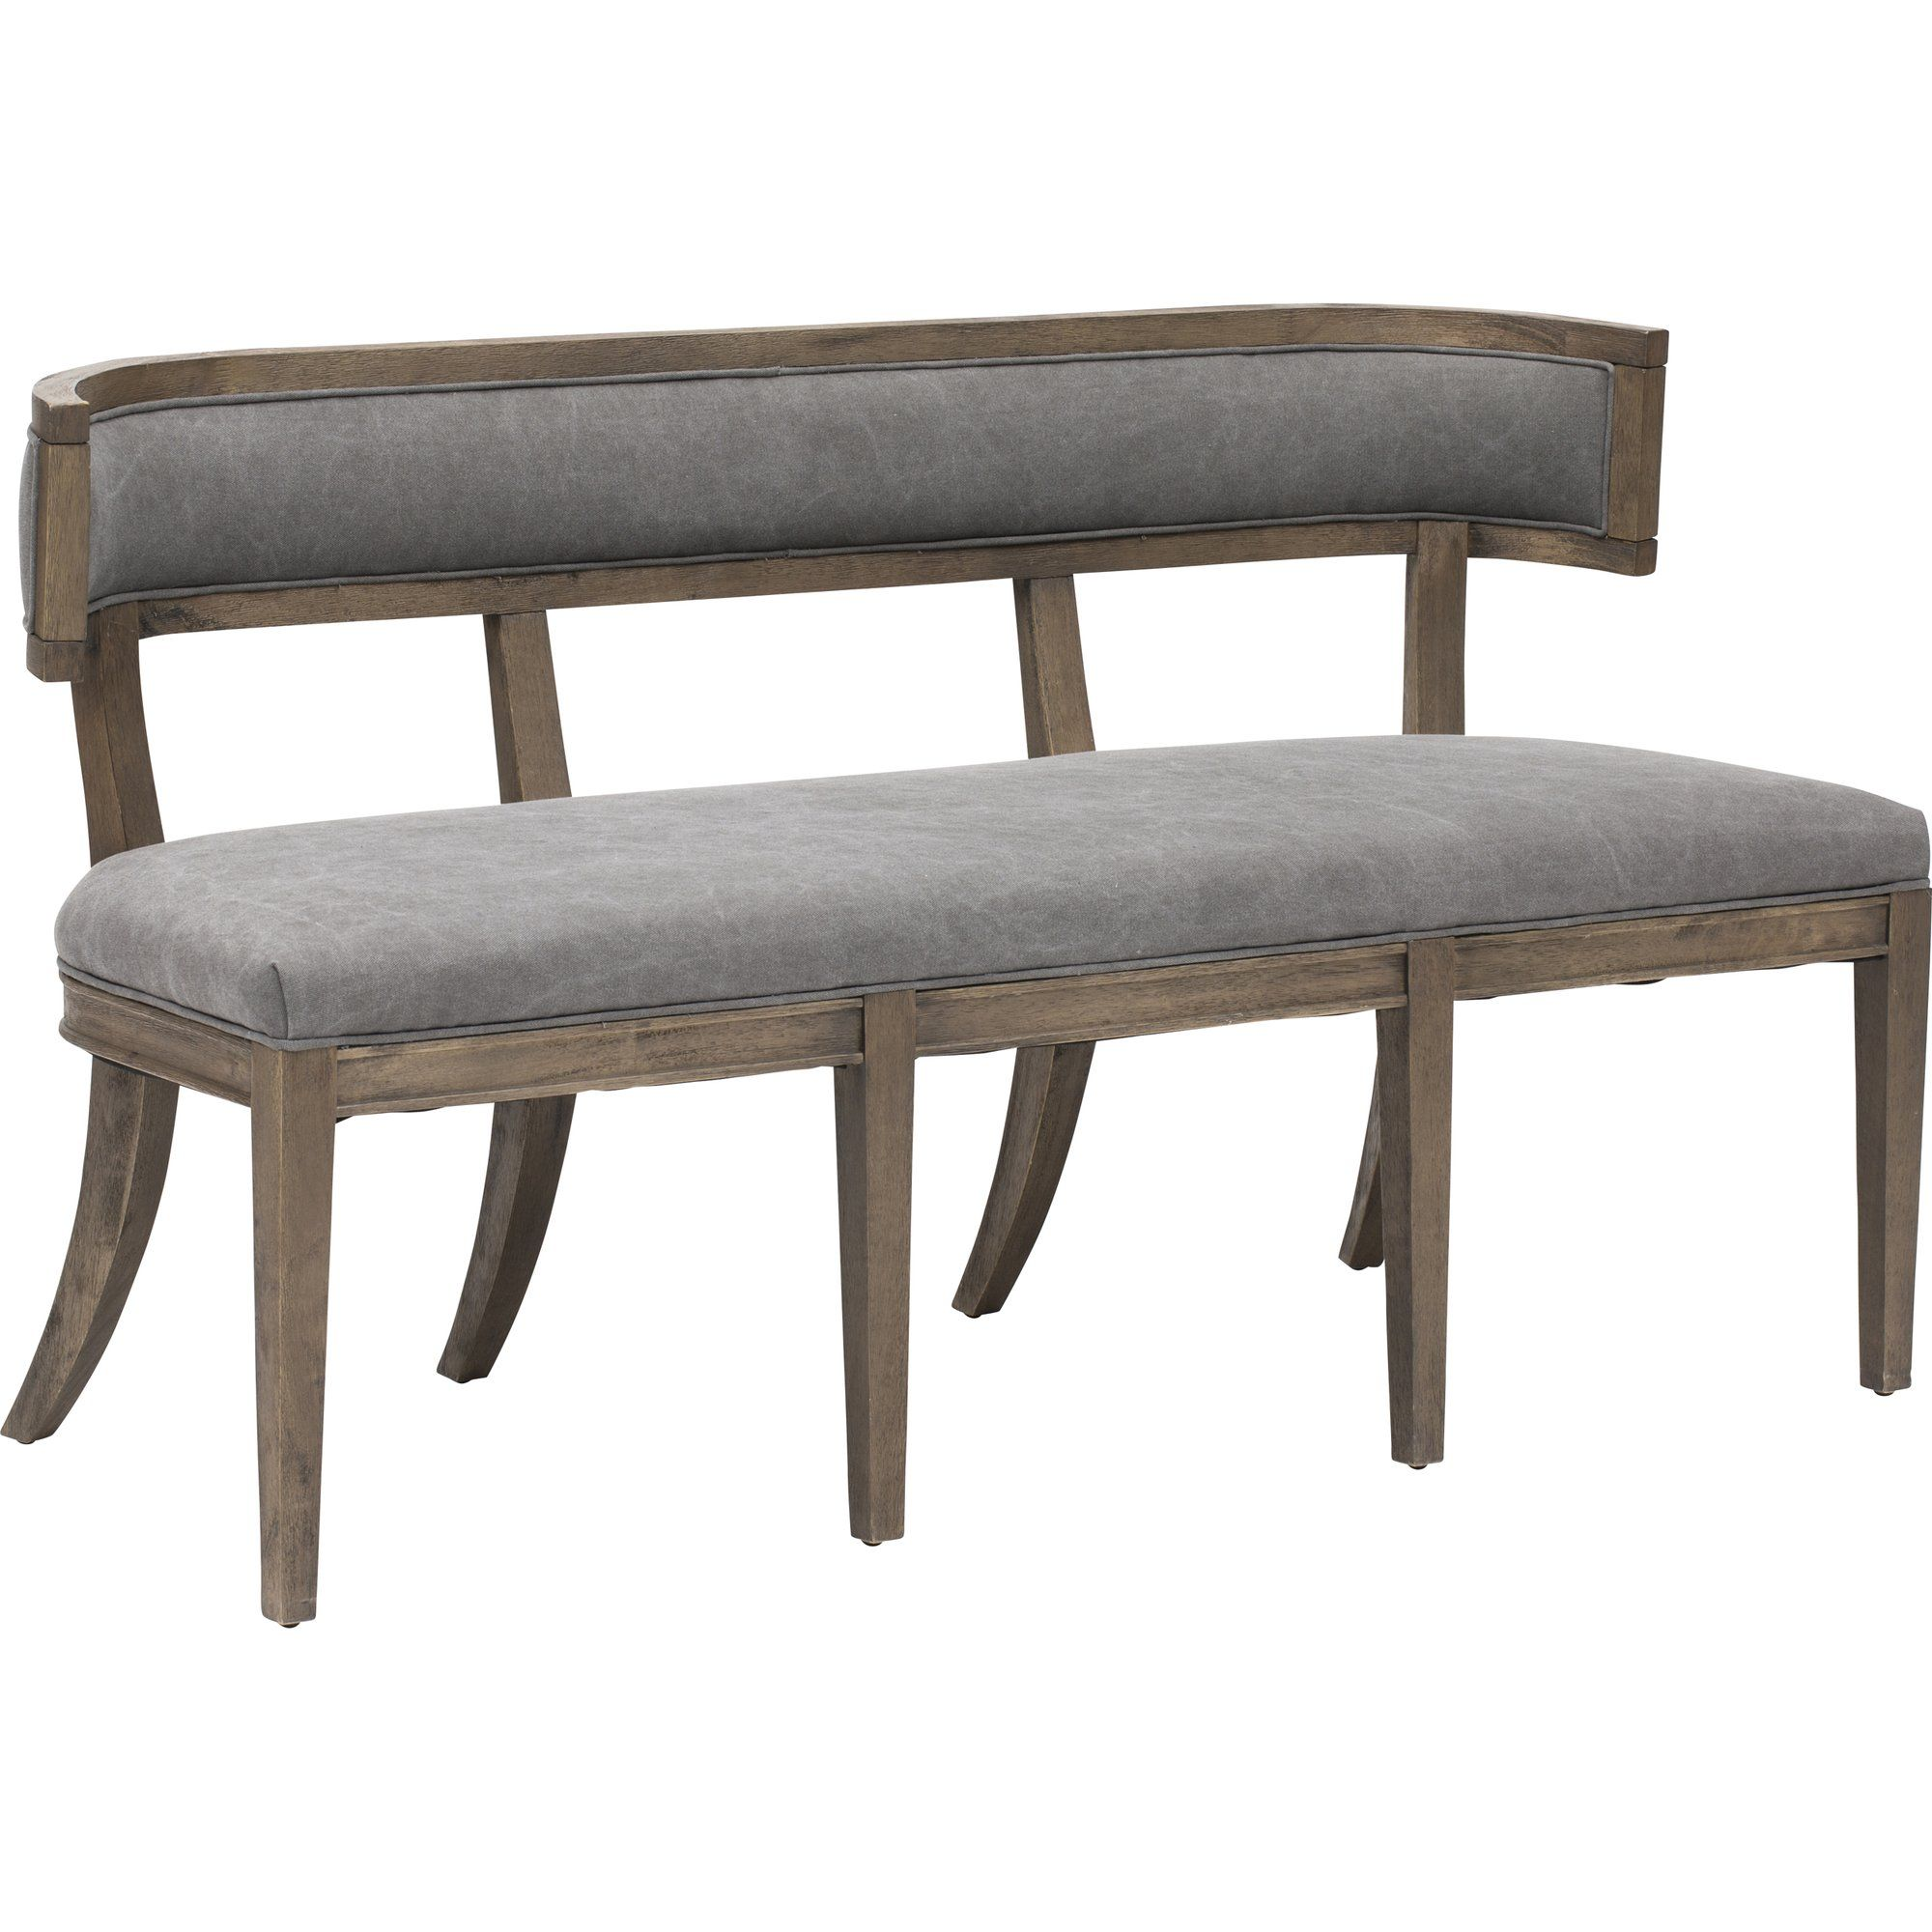 Carter Dining Bench In 2021 Dining Bench With Back Upholstered Dining Bench Dining Furniture Makeover